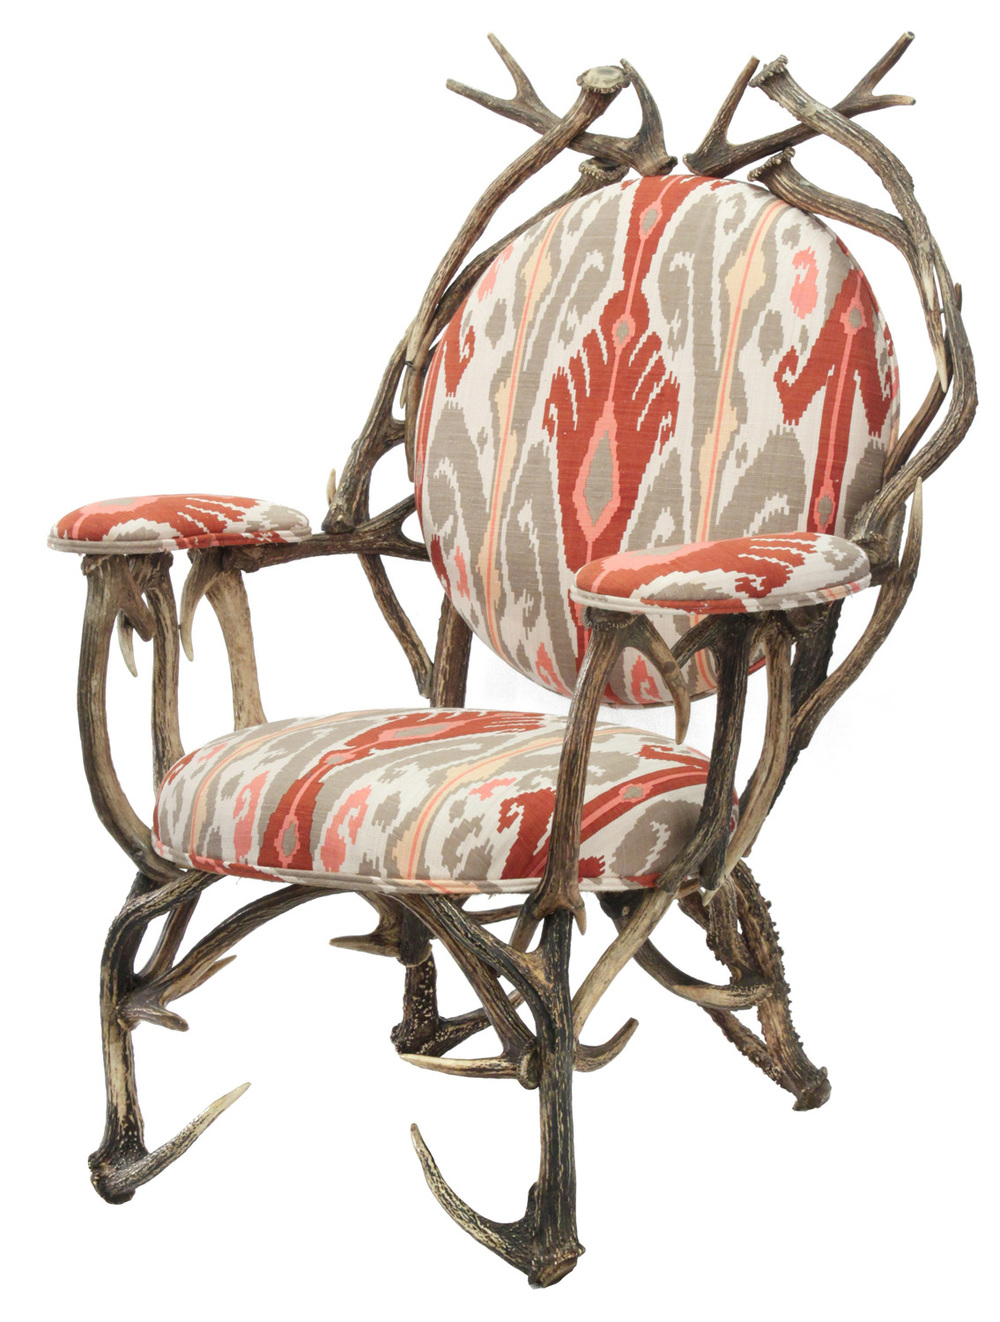 70's 75 antlers red fabric loungechairs145 detail1 hires.jpg